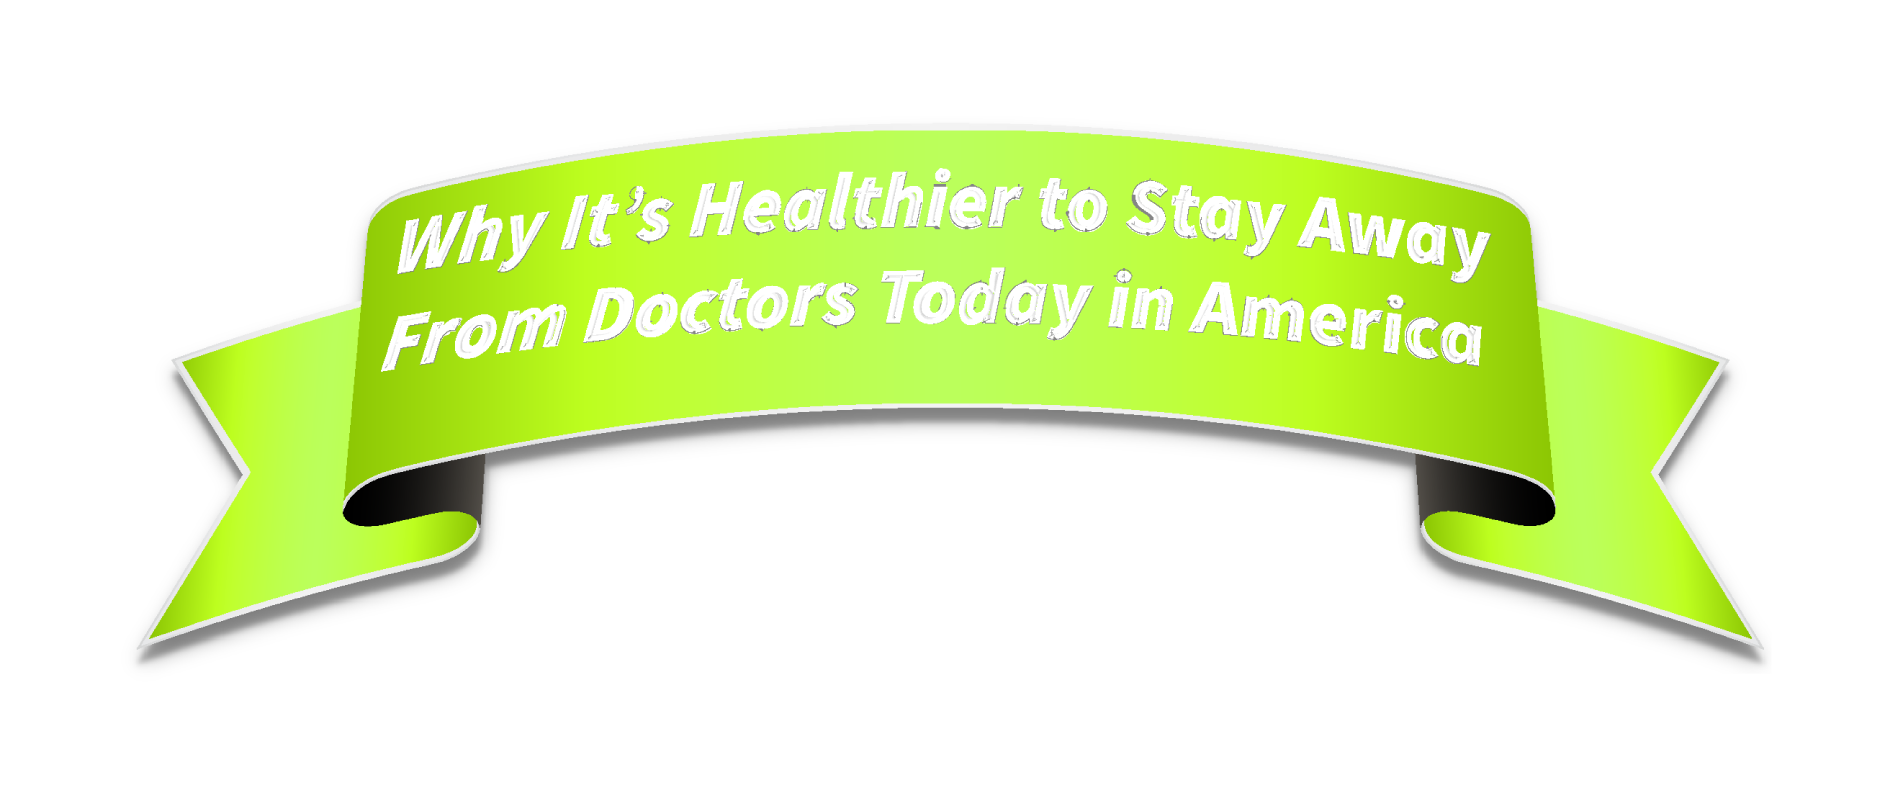 Its Healthier To Stay Away From Doctors In America Part 1 Of 2